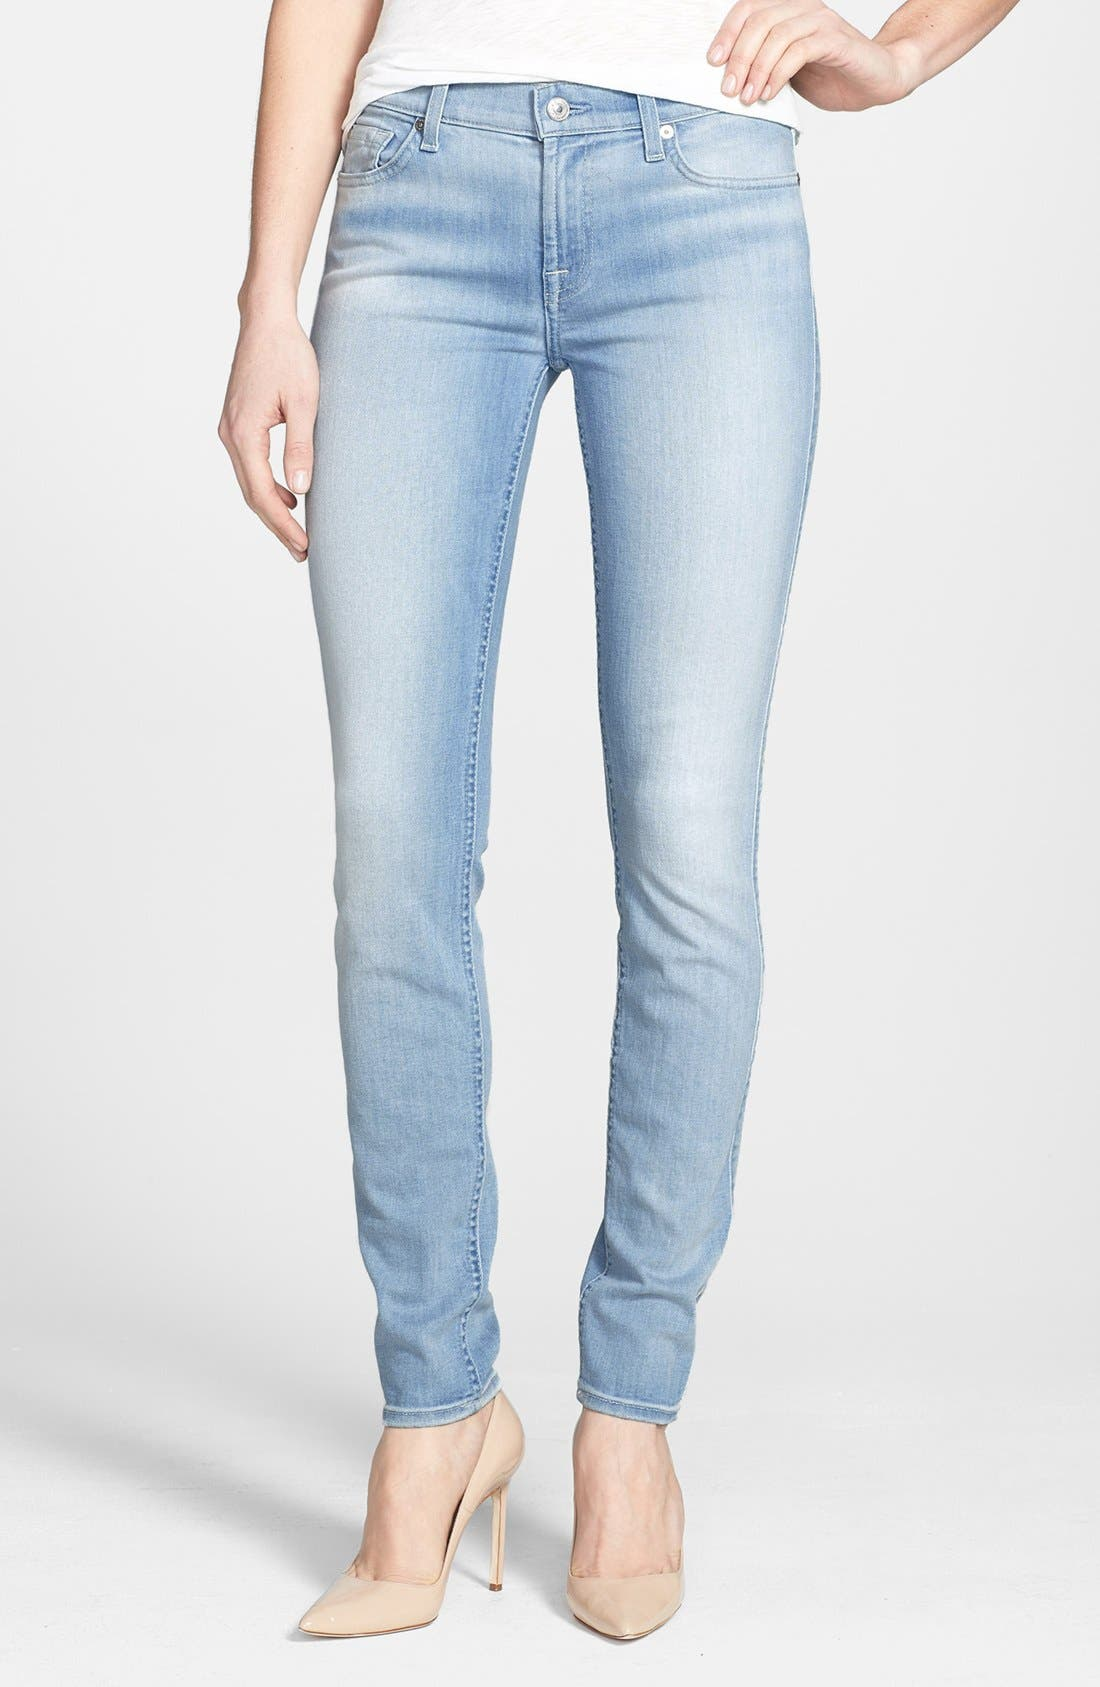 'The Skinny' Mid Rise Jeans,                             Main thumbnail 1, color,                             Sky Blue